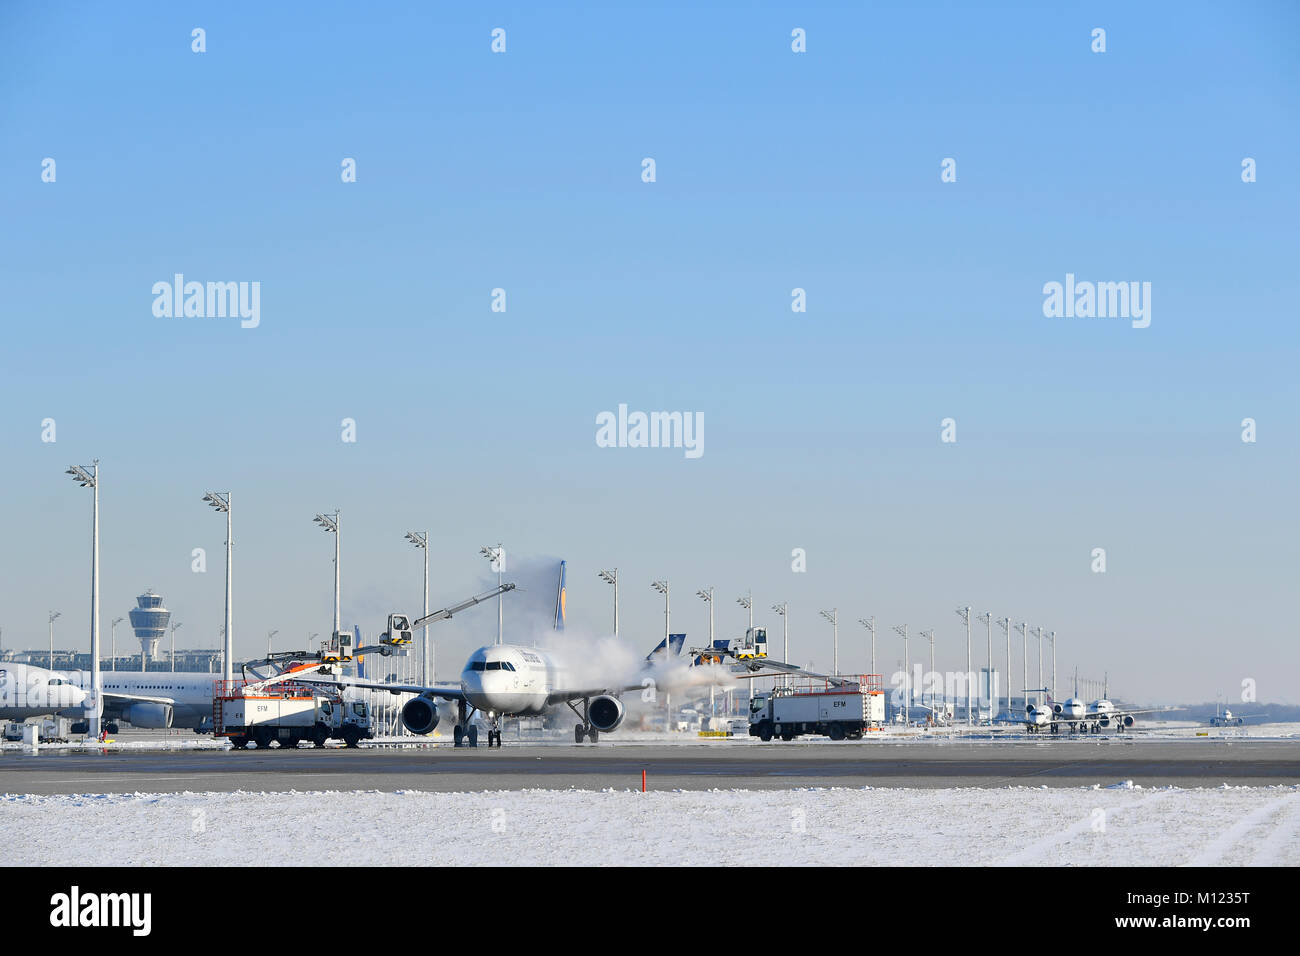 Aircraft de-icing,Lufthansa,Airbus A 321,Munich Airport,Upper Bavaria,Germany - Stock Image